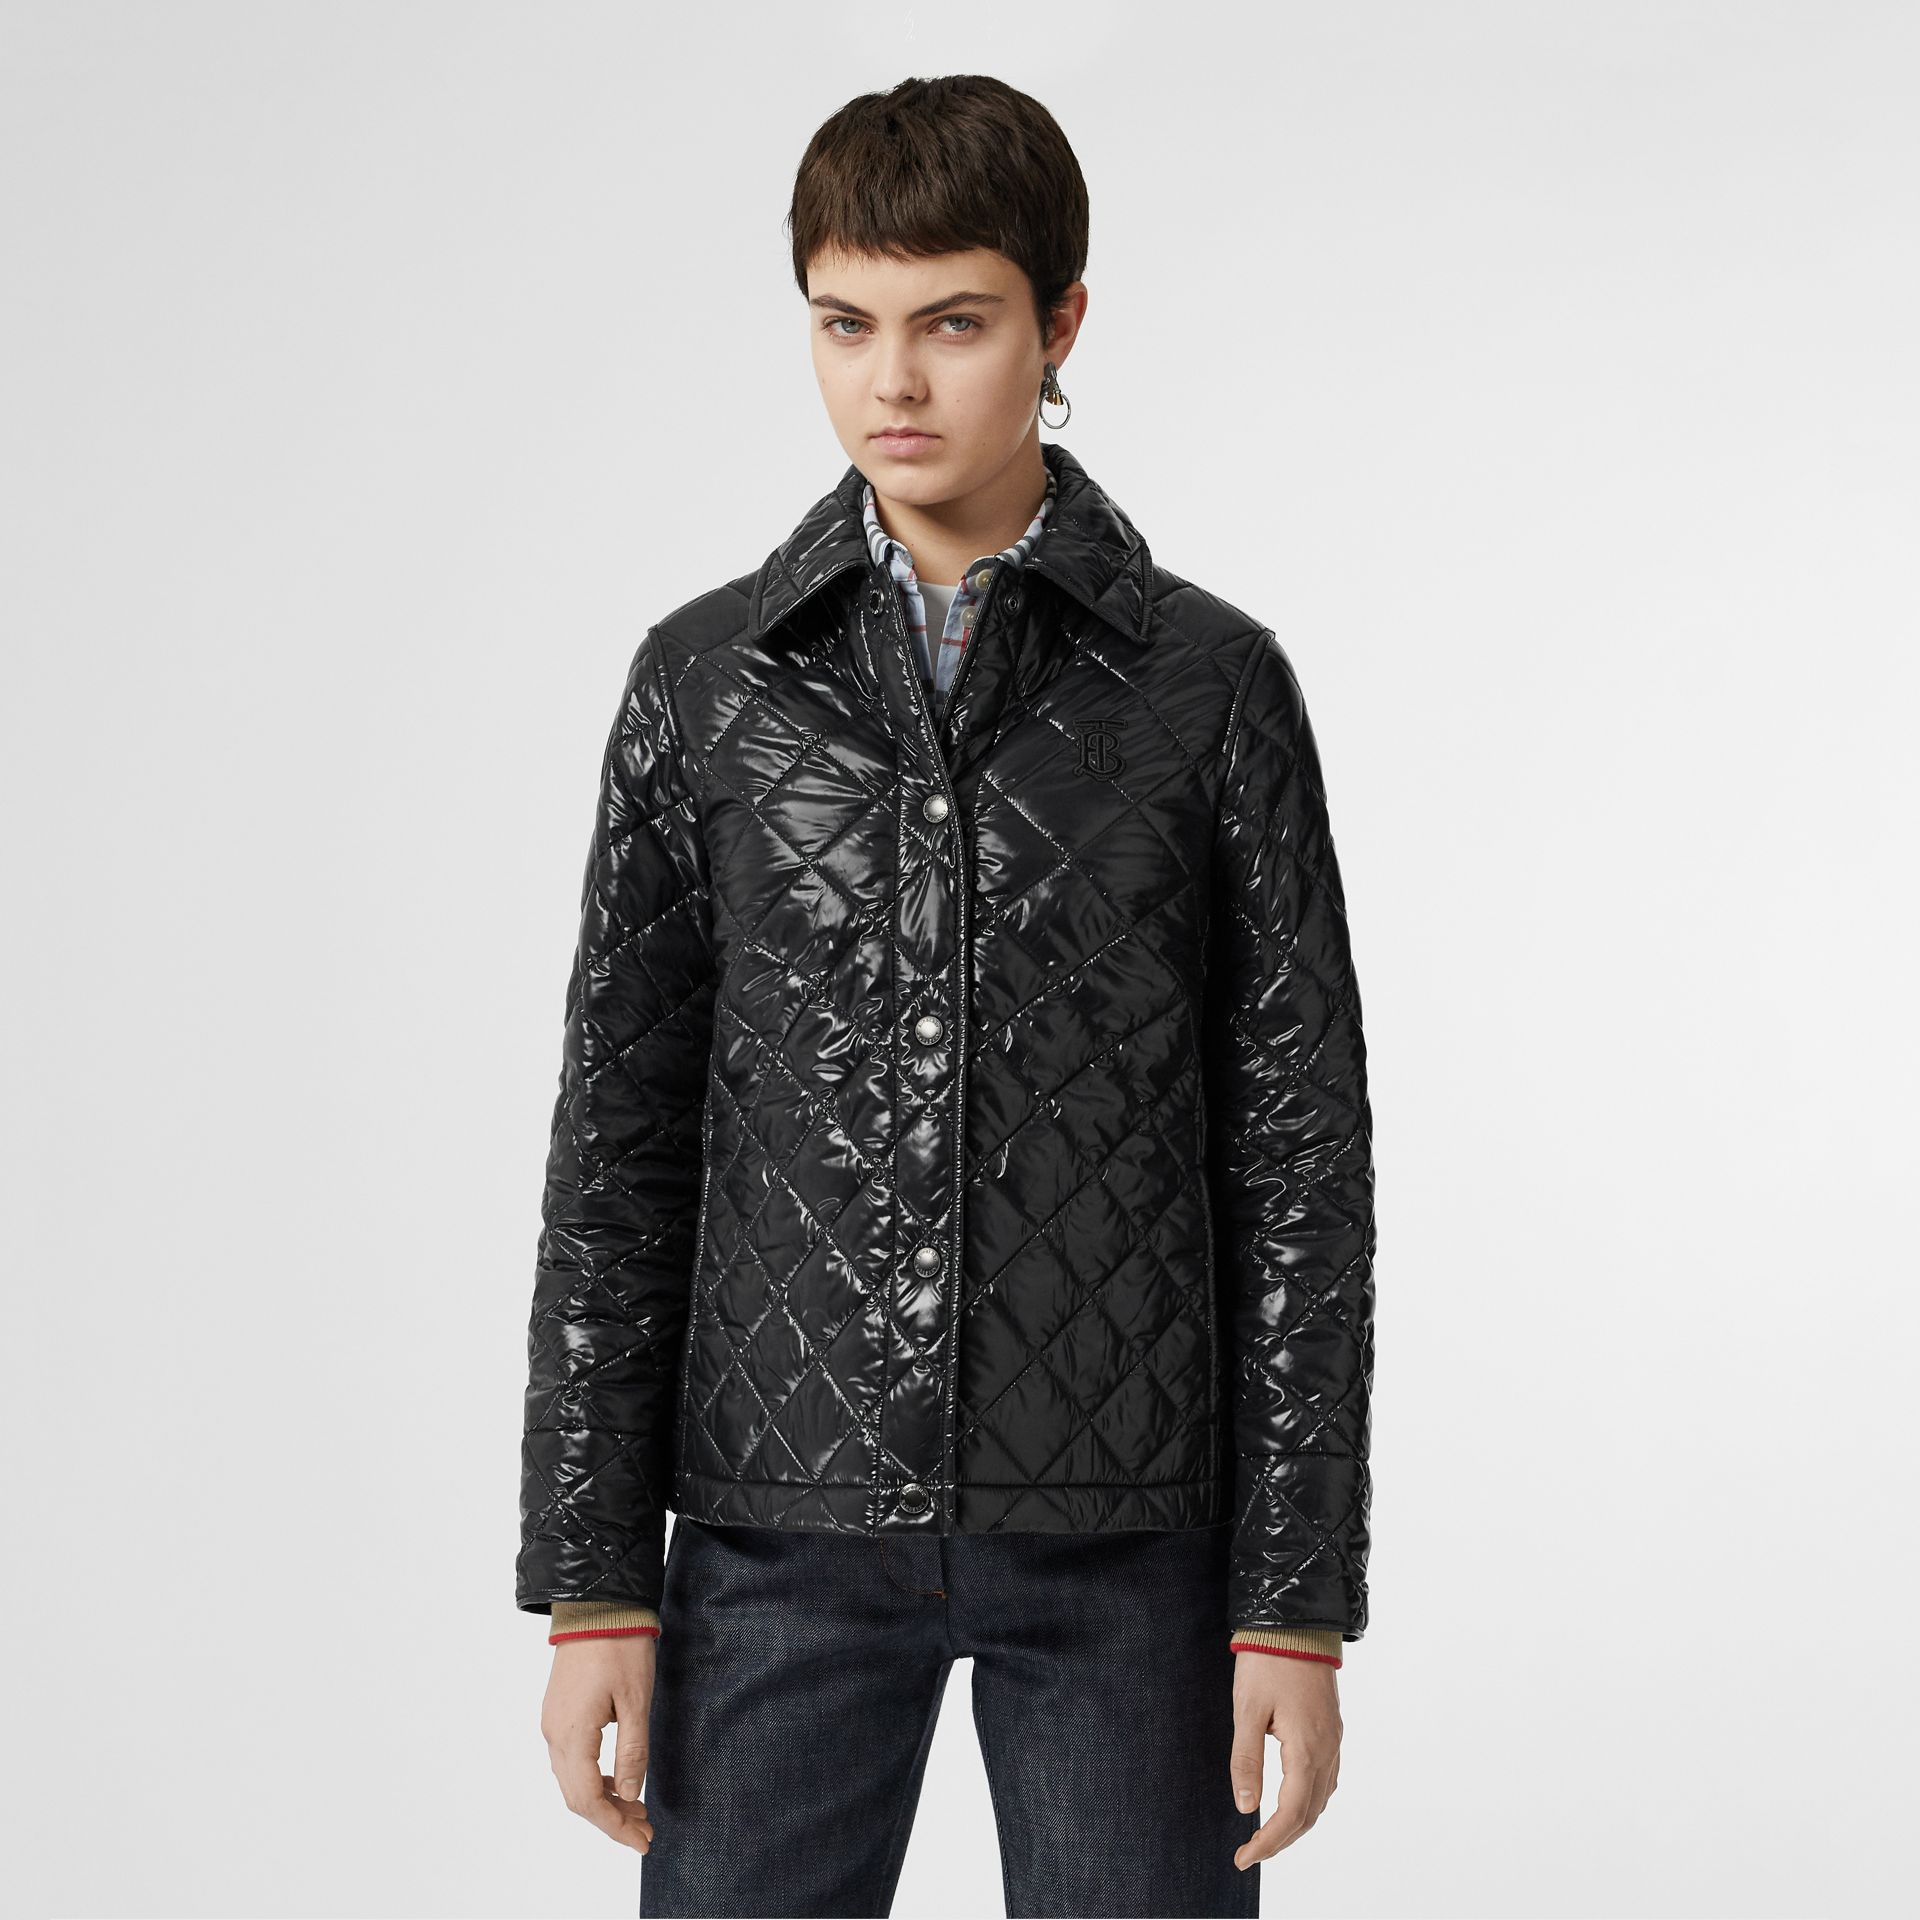 Monogram Motif Diamond Quilted Jacket in Black - Women | Burberry United Kingdom - gallery image 5